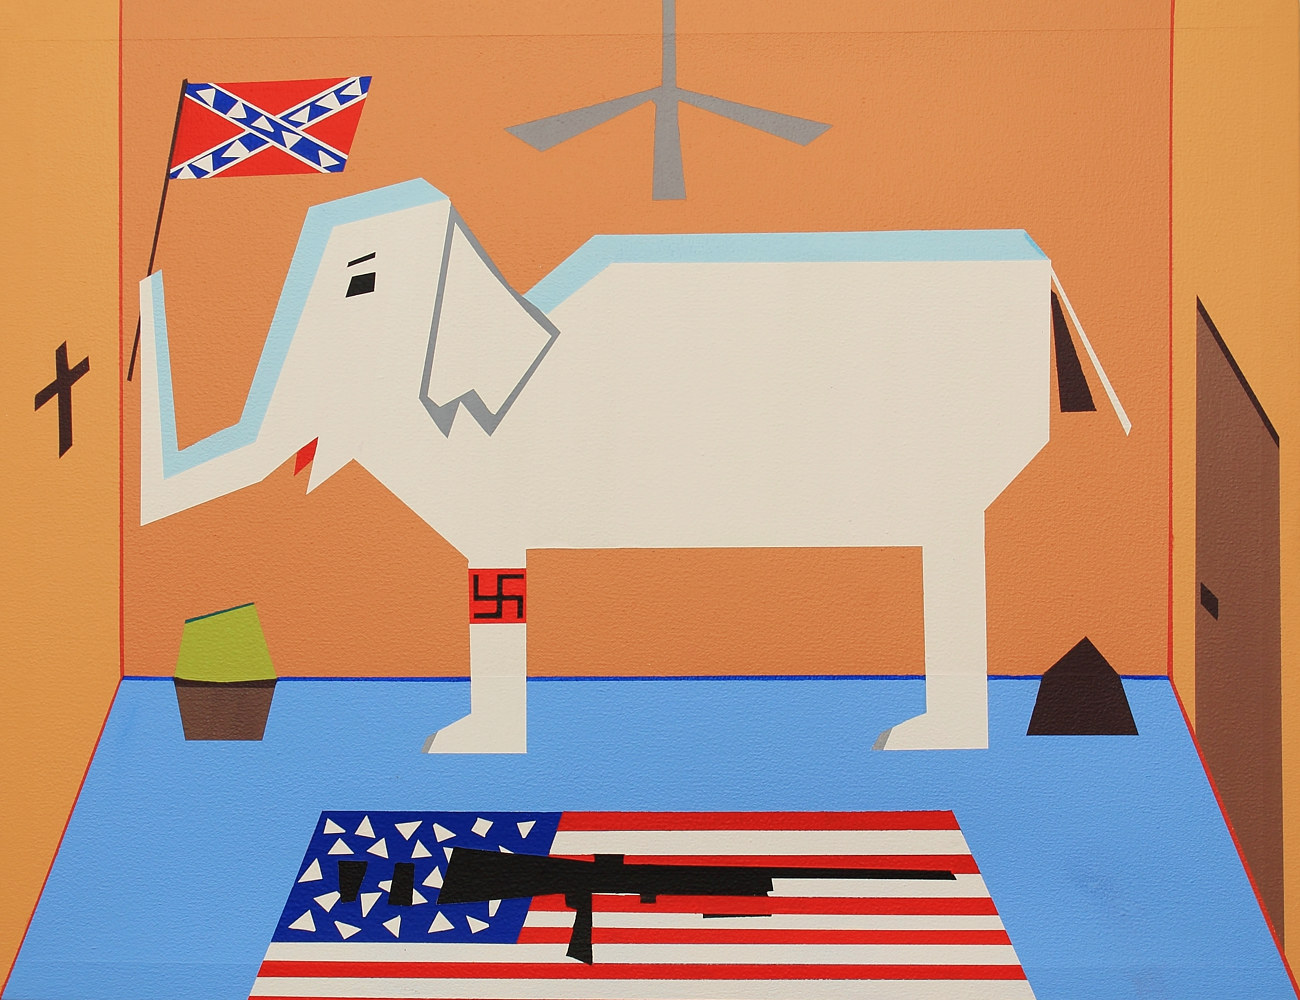 Acrylic painting The White Elephant in the Room by Jorge Puron